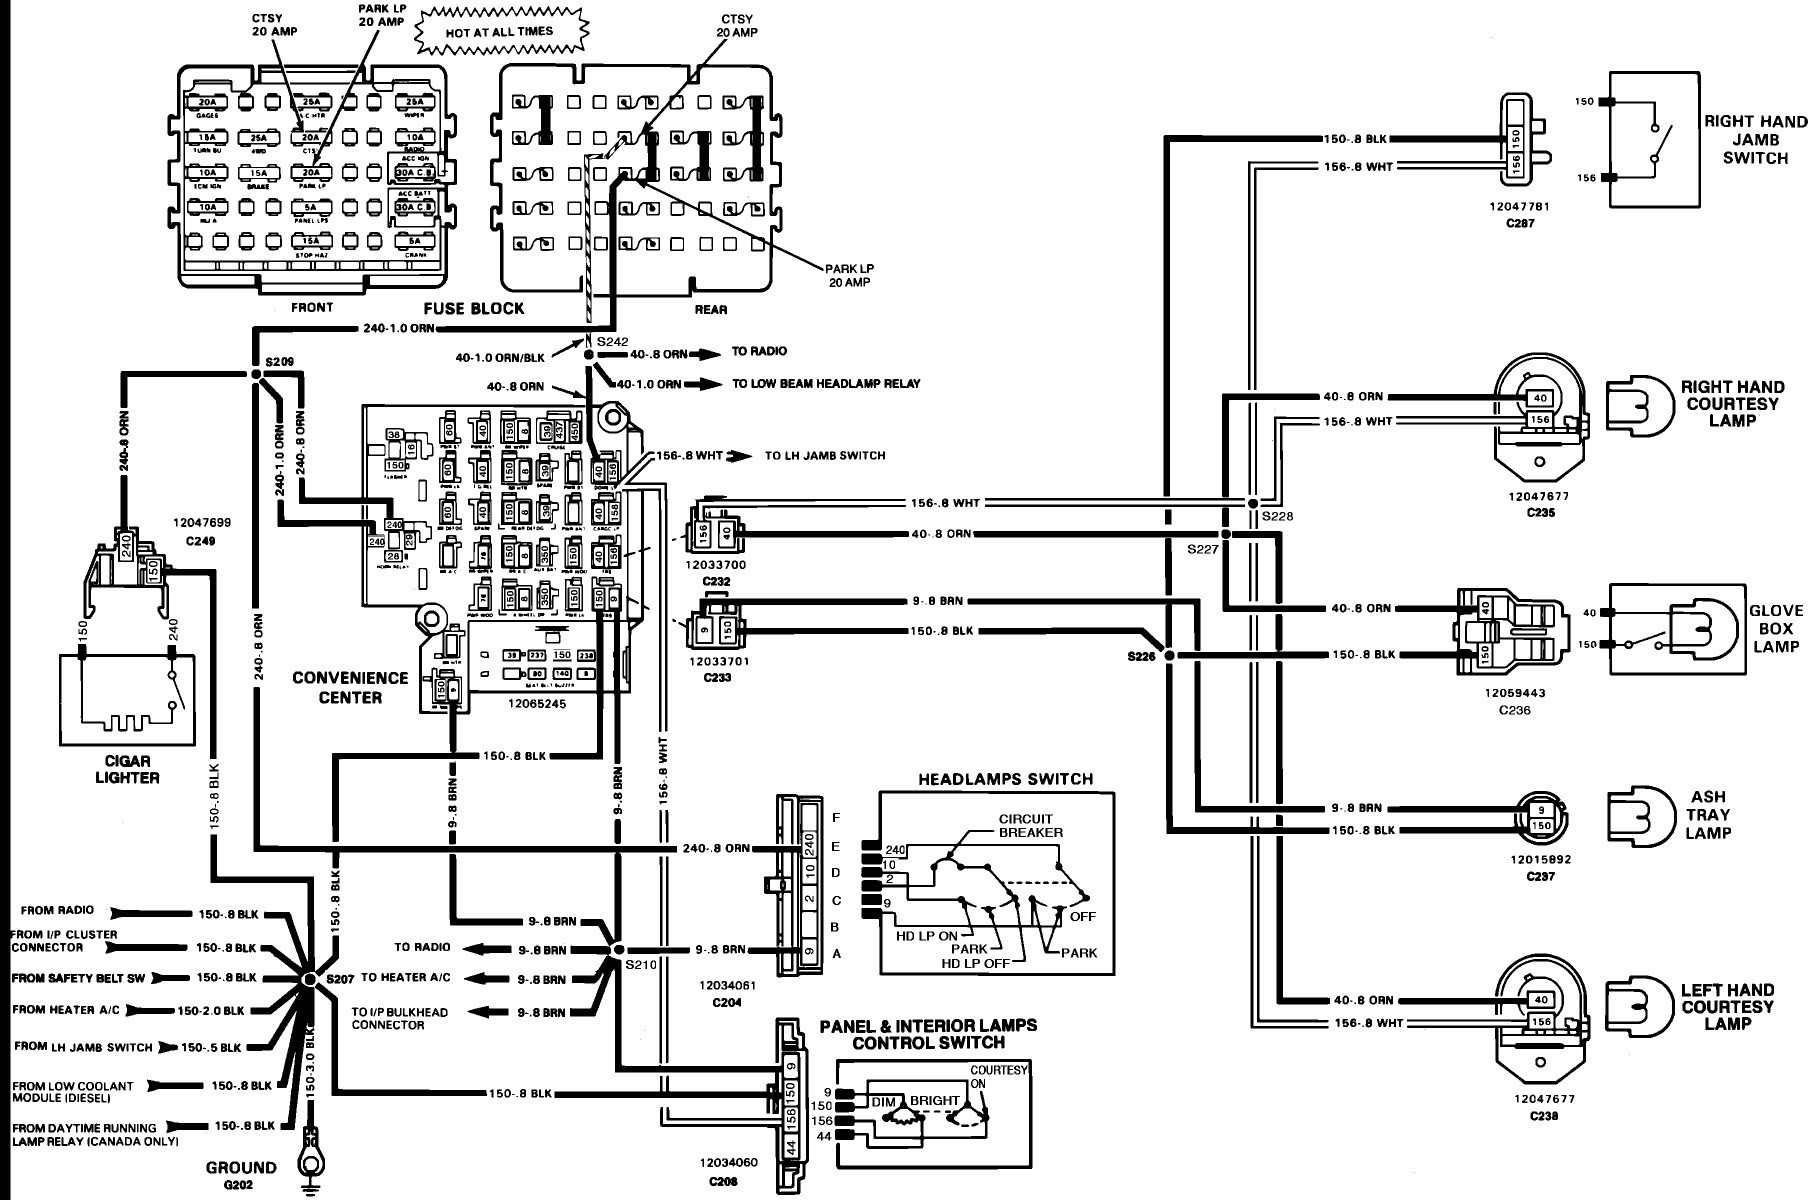 1988 Chevy Truck Tail Light Wiring Diagram 1982 S10 Tail Light Wiring Another Blog About Wiring Diagram • Of 1988 Chevy Truck Tail Light Wiring Diagram